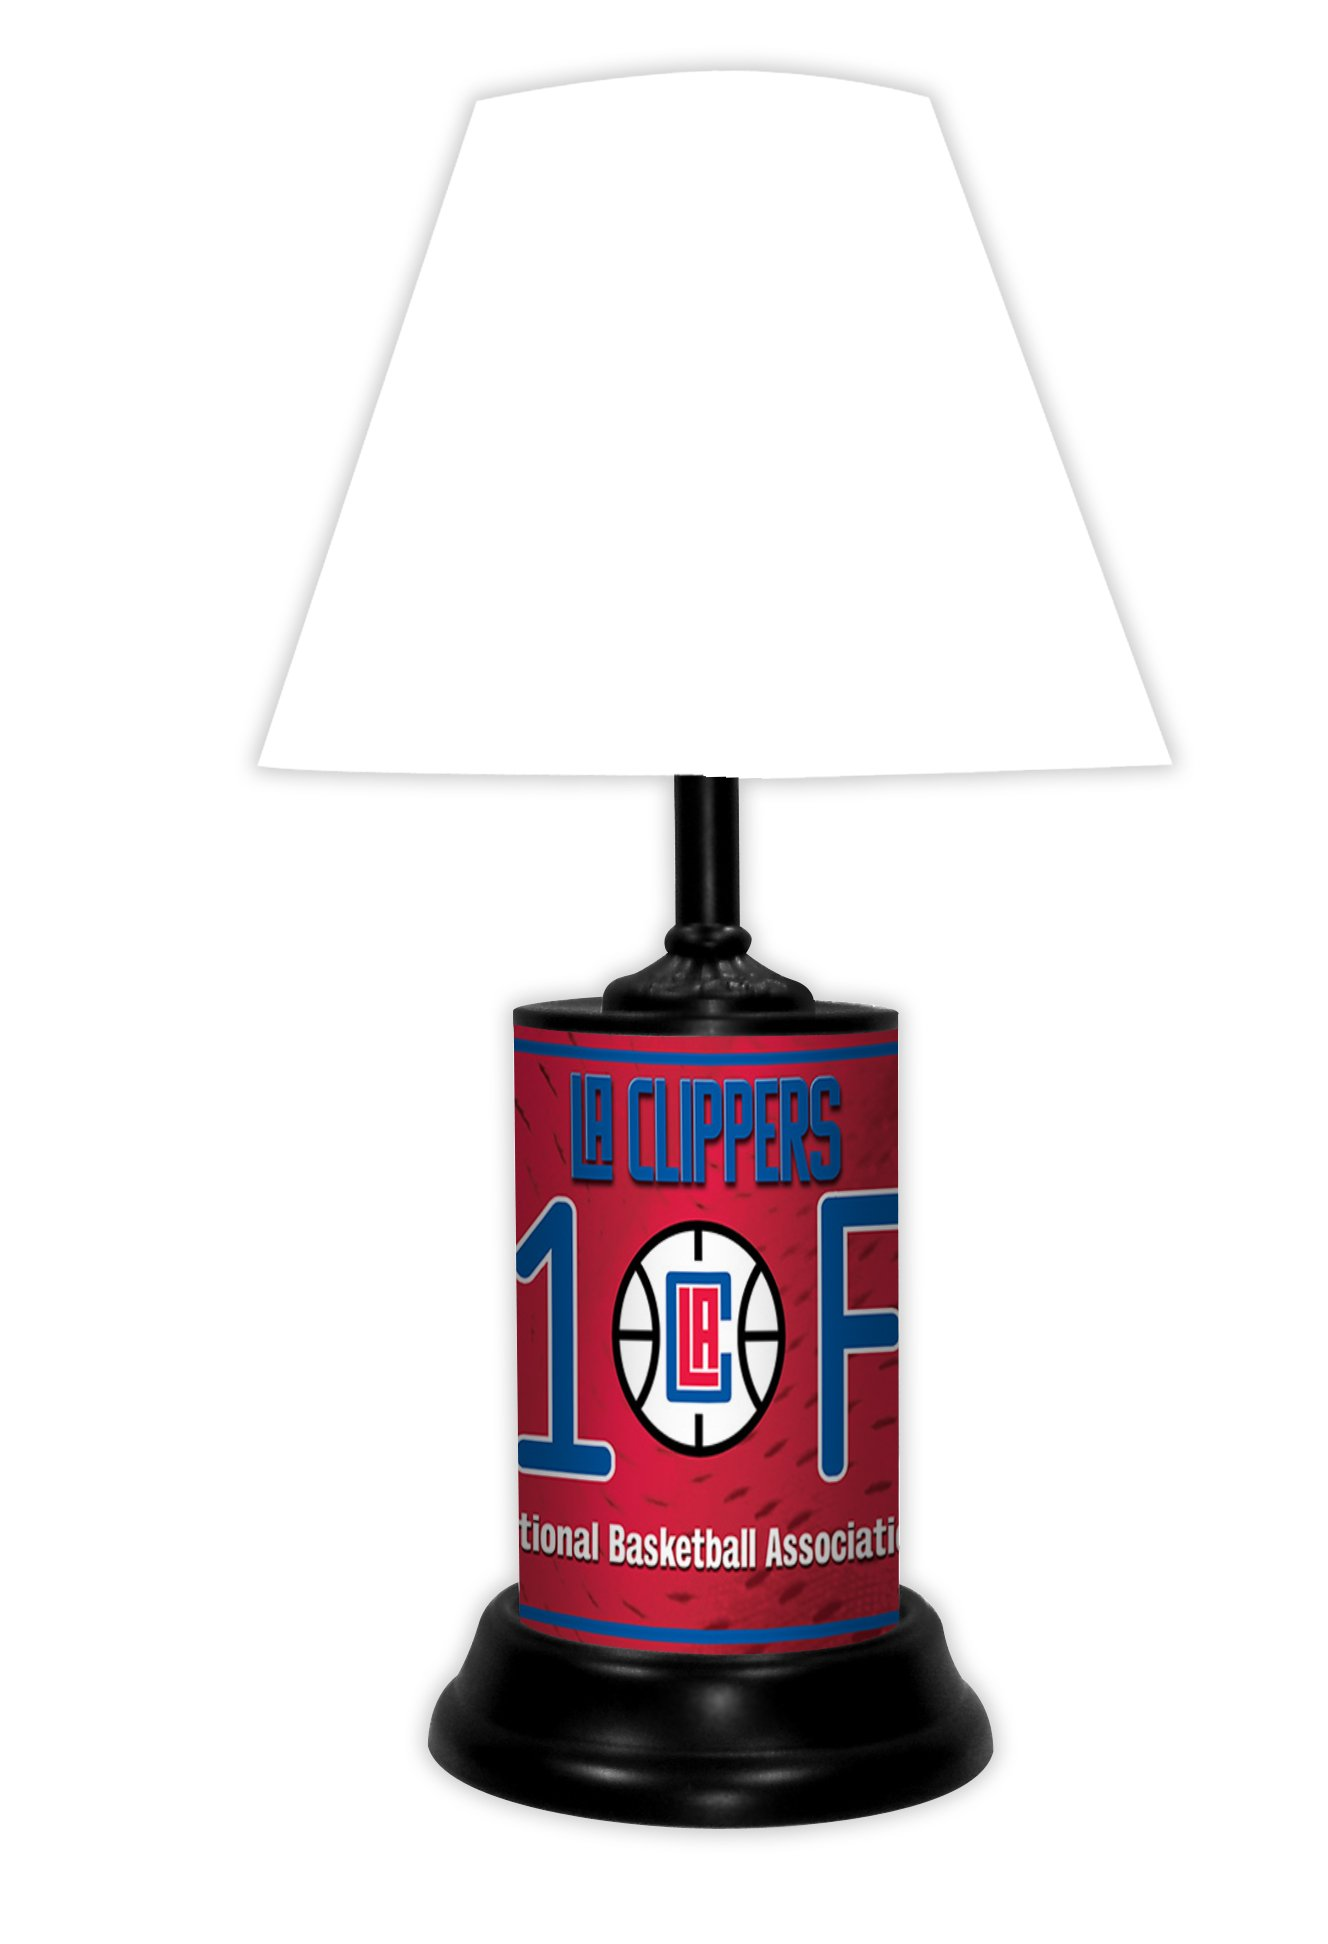 LOS ANGELES CLIPPERS NBA LAMP - BY TAGZ SPORTS